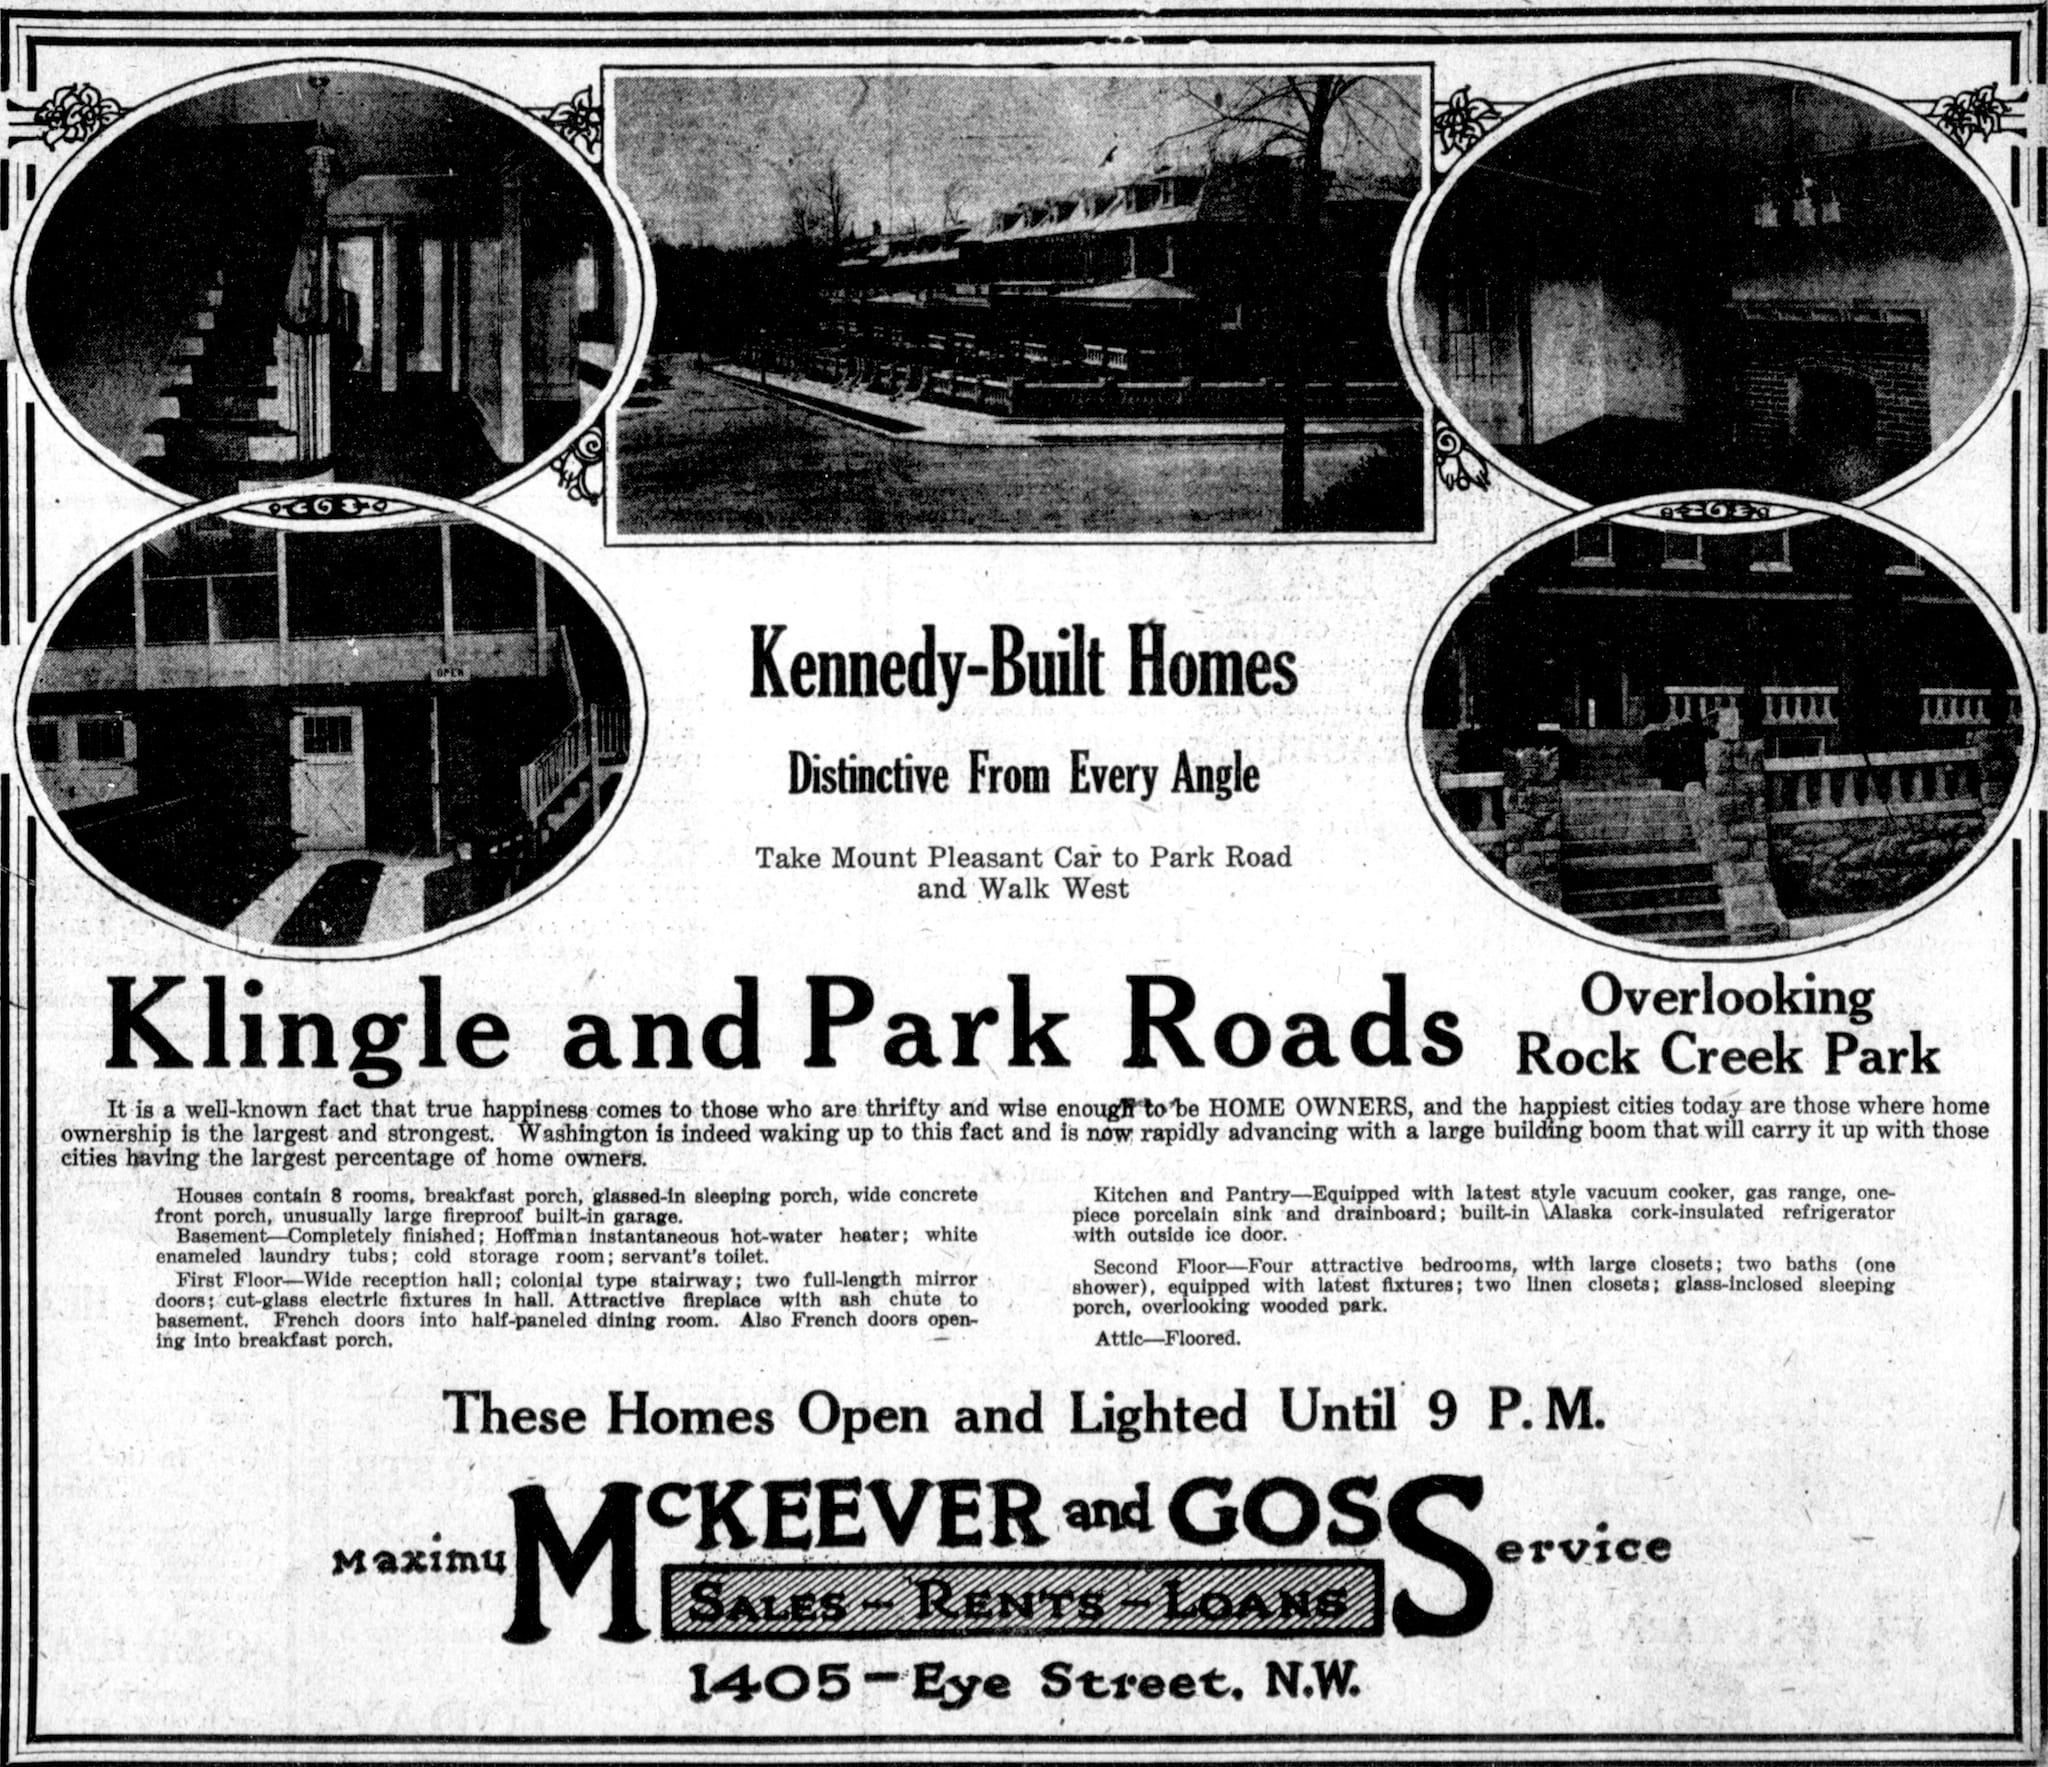 Homes for Sales on Klingle and Park Roads (1922)